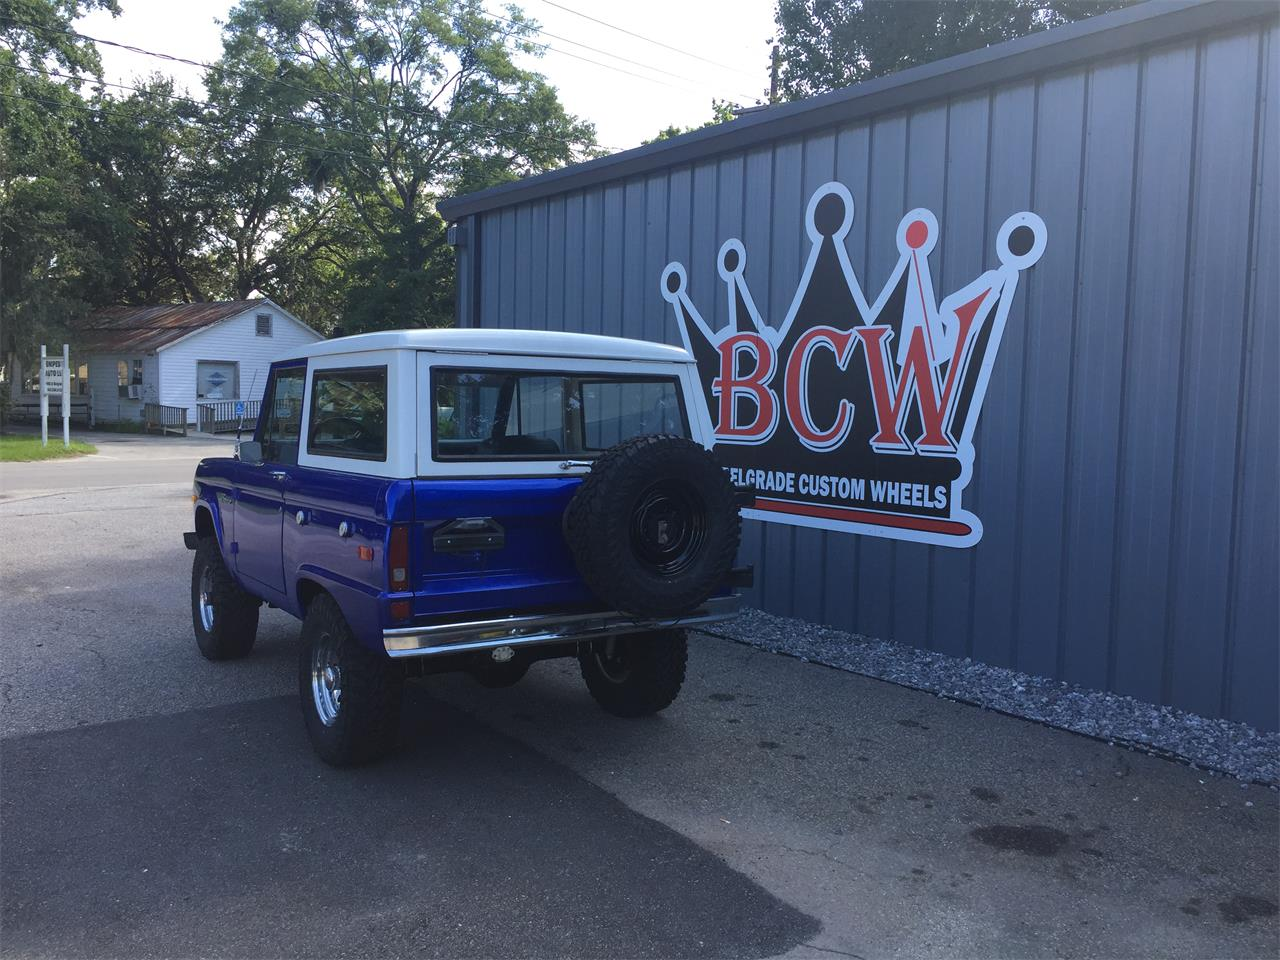 Large Picture of 1976 Ford Bronco located in Charleston South Carolina - $34,900.00 - R1W8